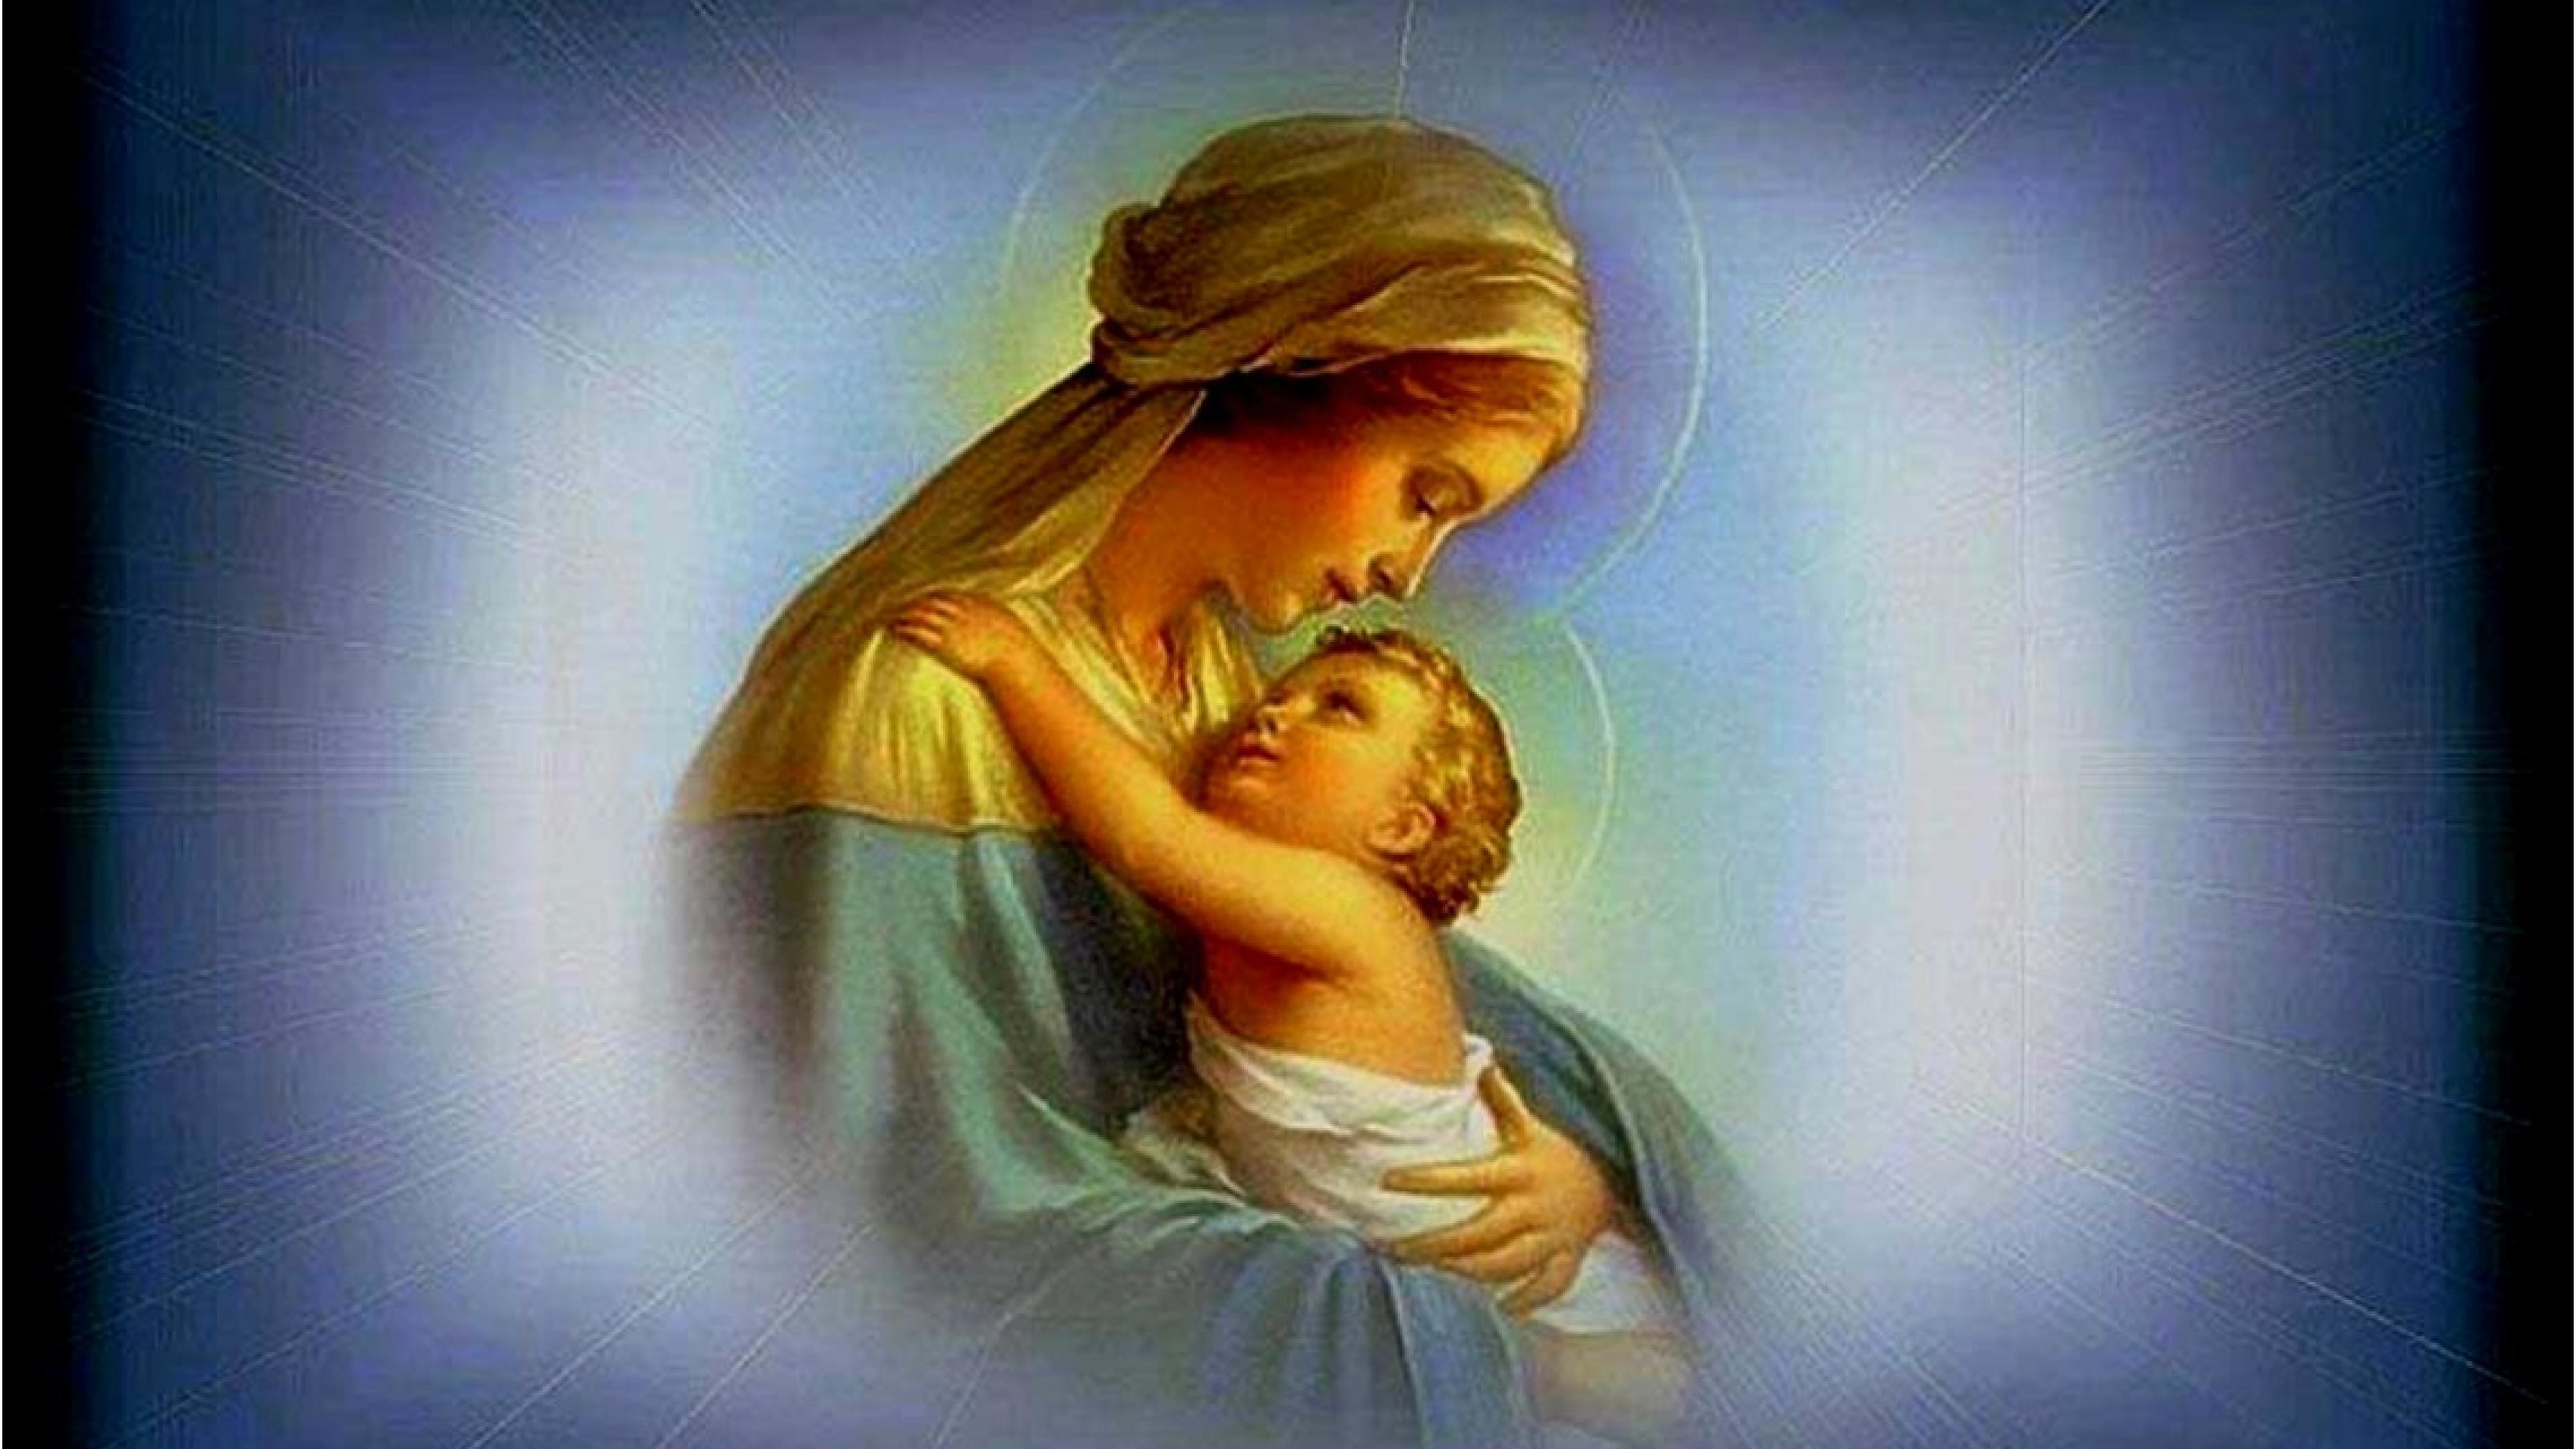 Mother Mary with Baby Jesus Wallpaper (34+ images)